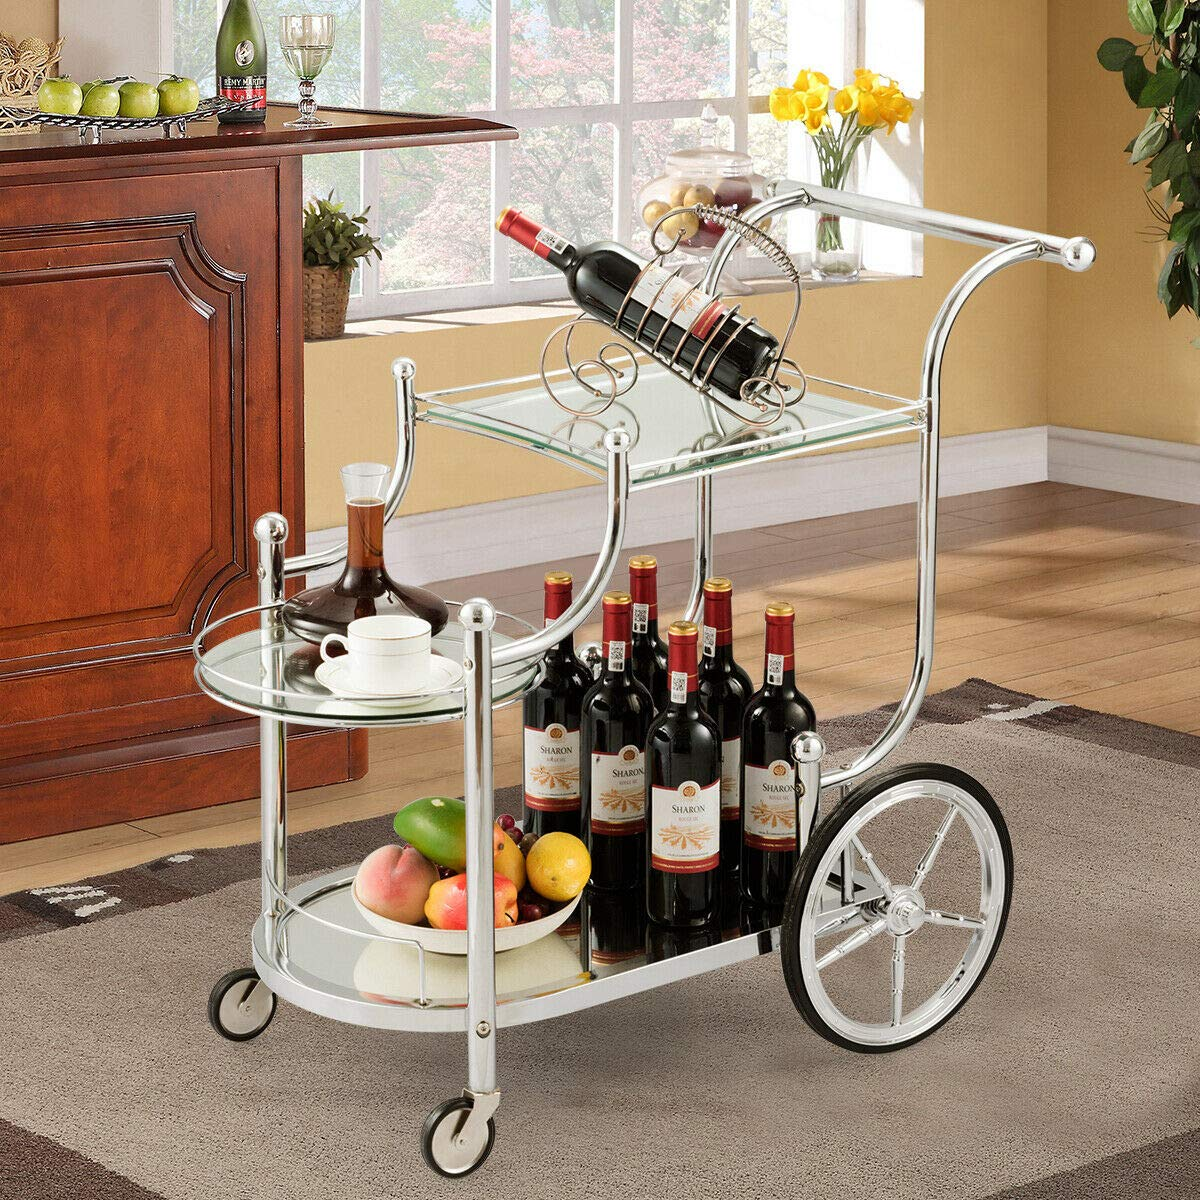 Tangkula Rolling Bar Cart, Metal Serving Cart with Tempered Glass, 3-Tier Glass Bar and Serving Cart, Tea Serving Bar Cart with 4 Wheels (Silver) by Tangkula